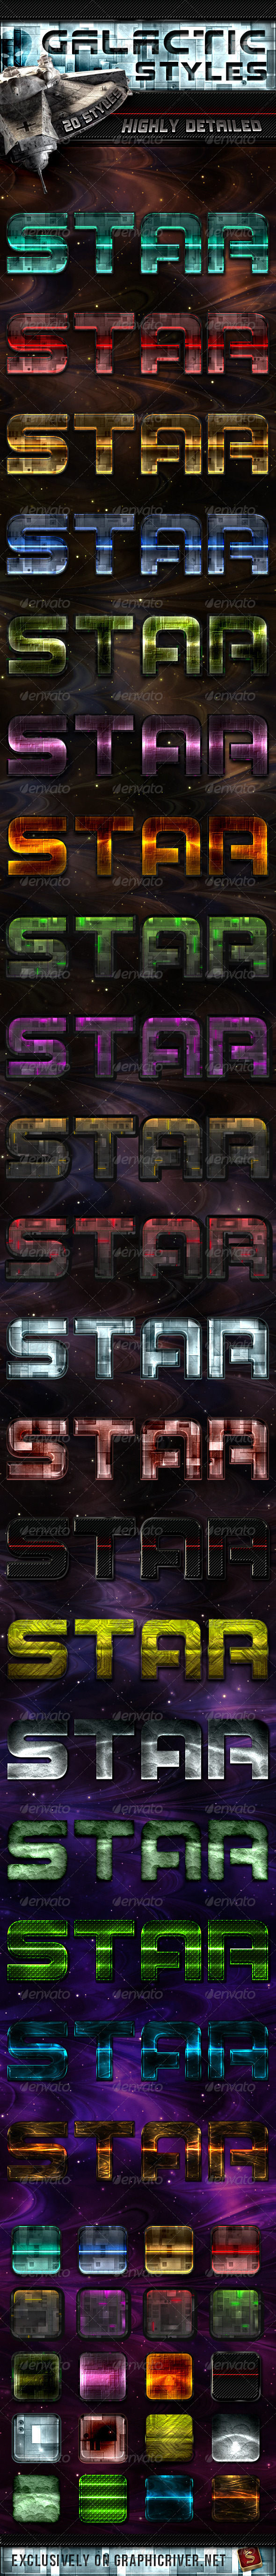 Galactic Photoshop Styles - Text Effects Styles